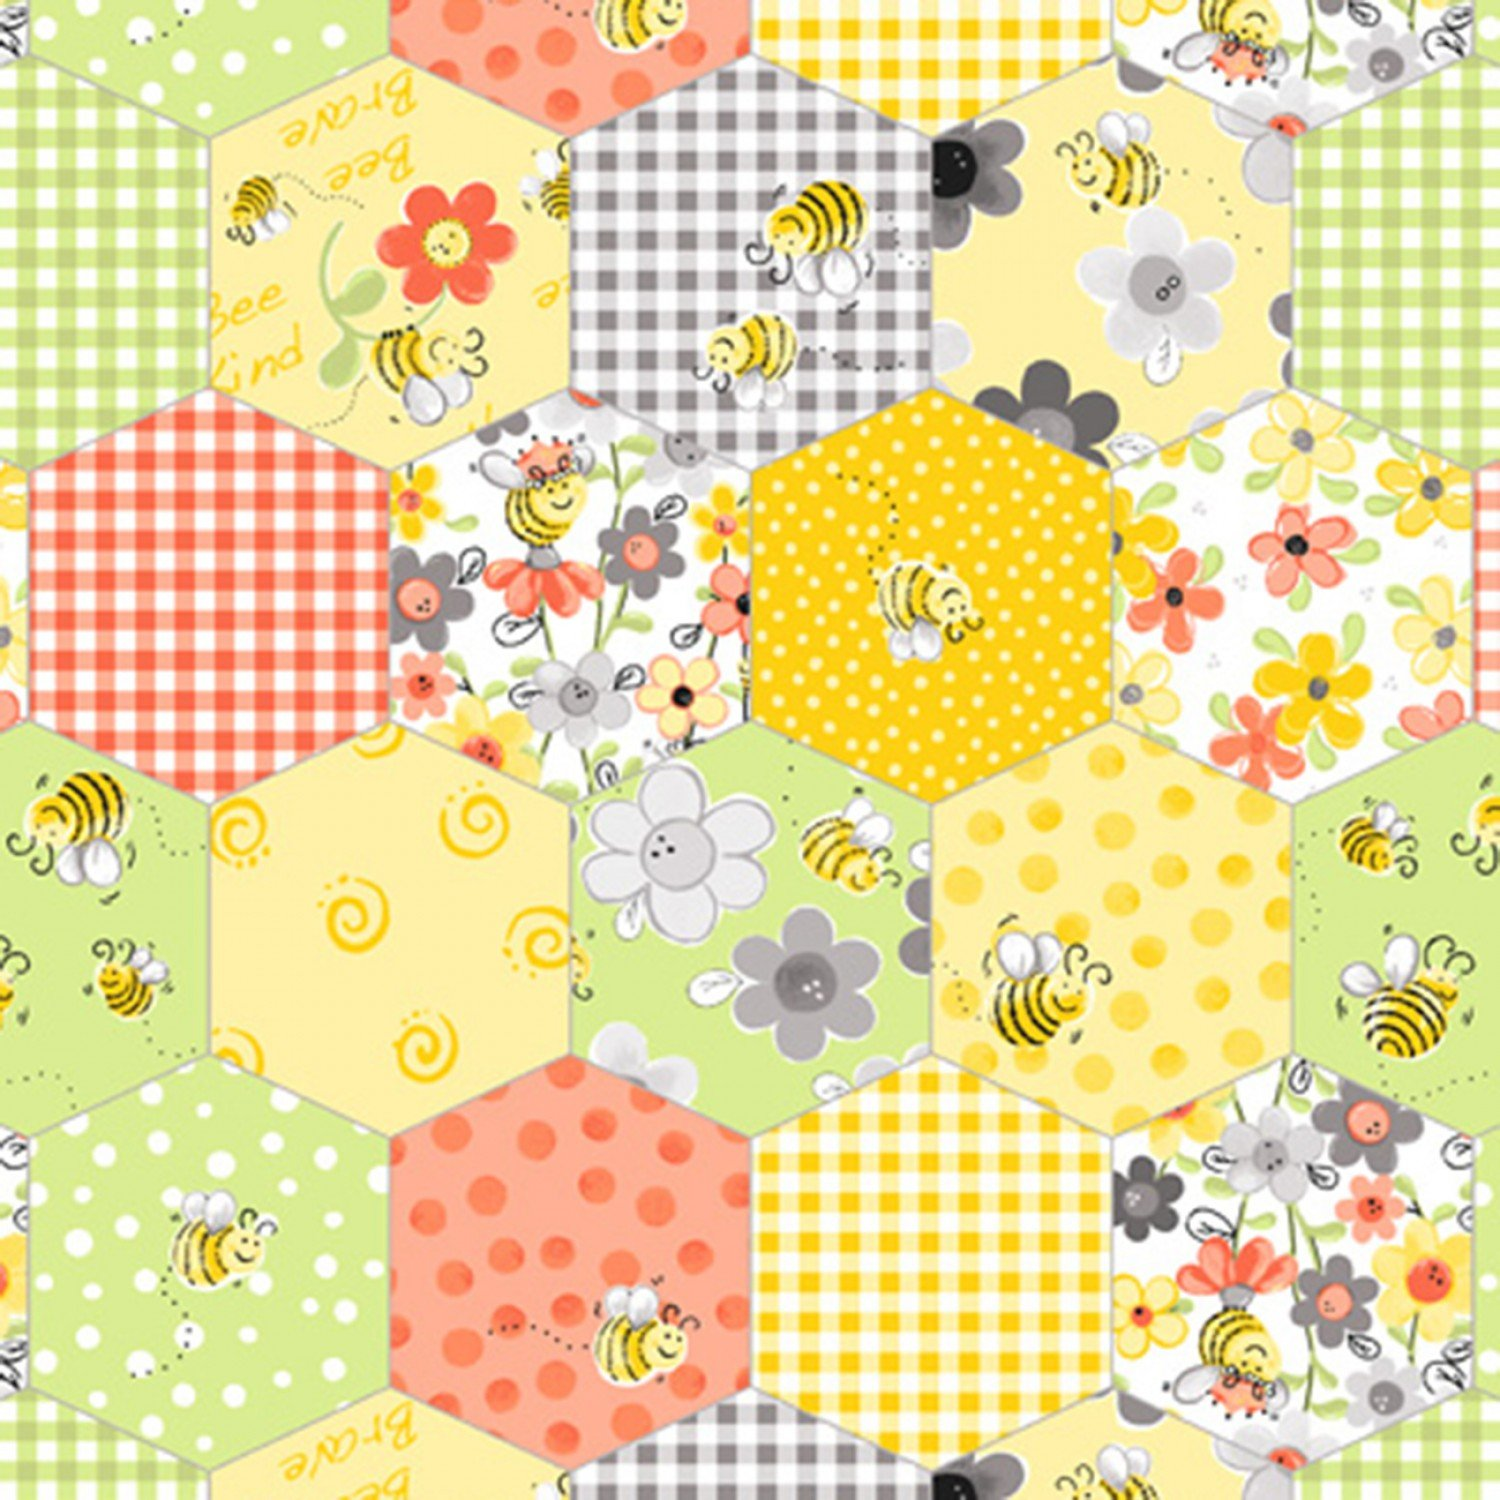 Sweet Bees Fabric by Susybee SBY